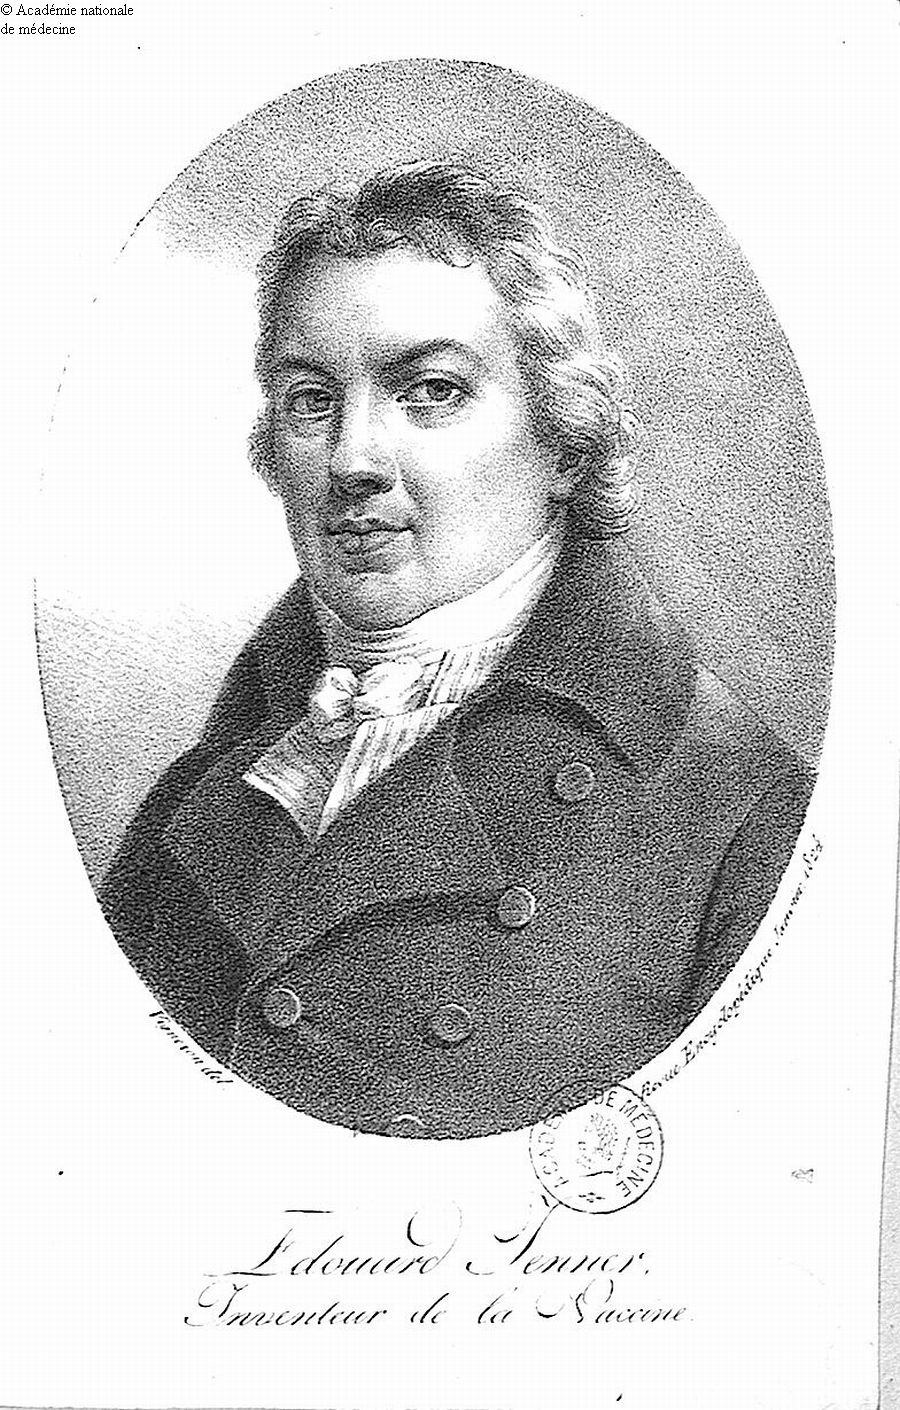 edward jenner essay Edward jenner is alongside the likes of joseph lister, robert koch and louis pasteur in medical historyedward jenner was born in 1749 and died in 1823edward jenner's great gift to the world was his vaccination for smallpox.